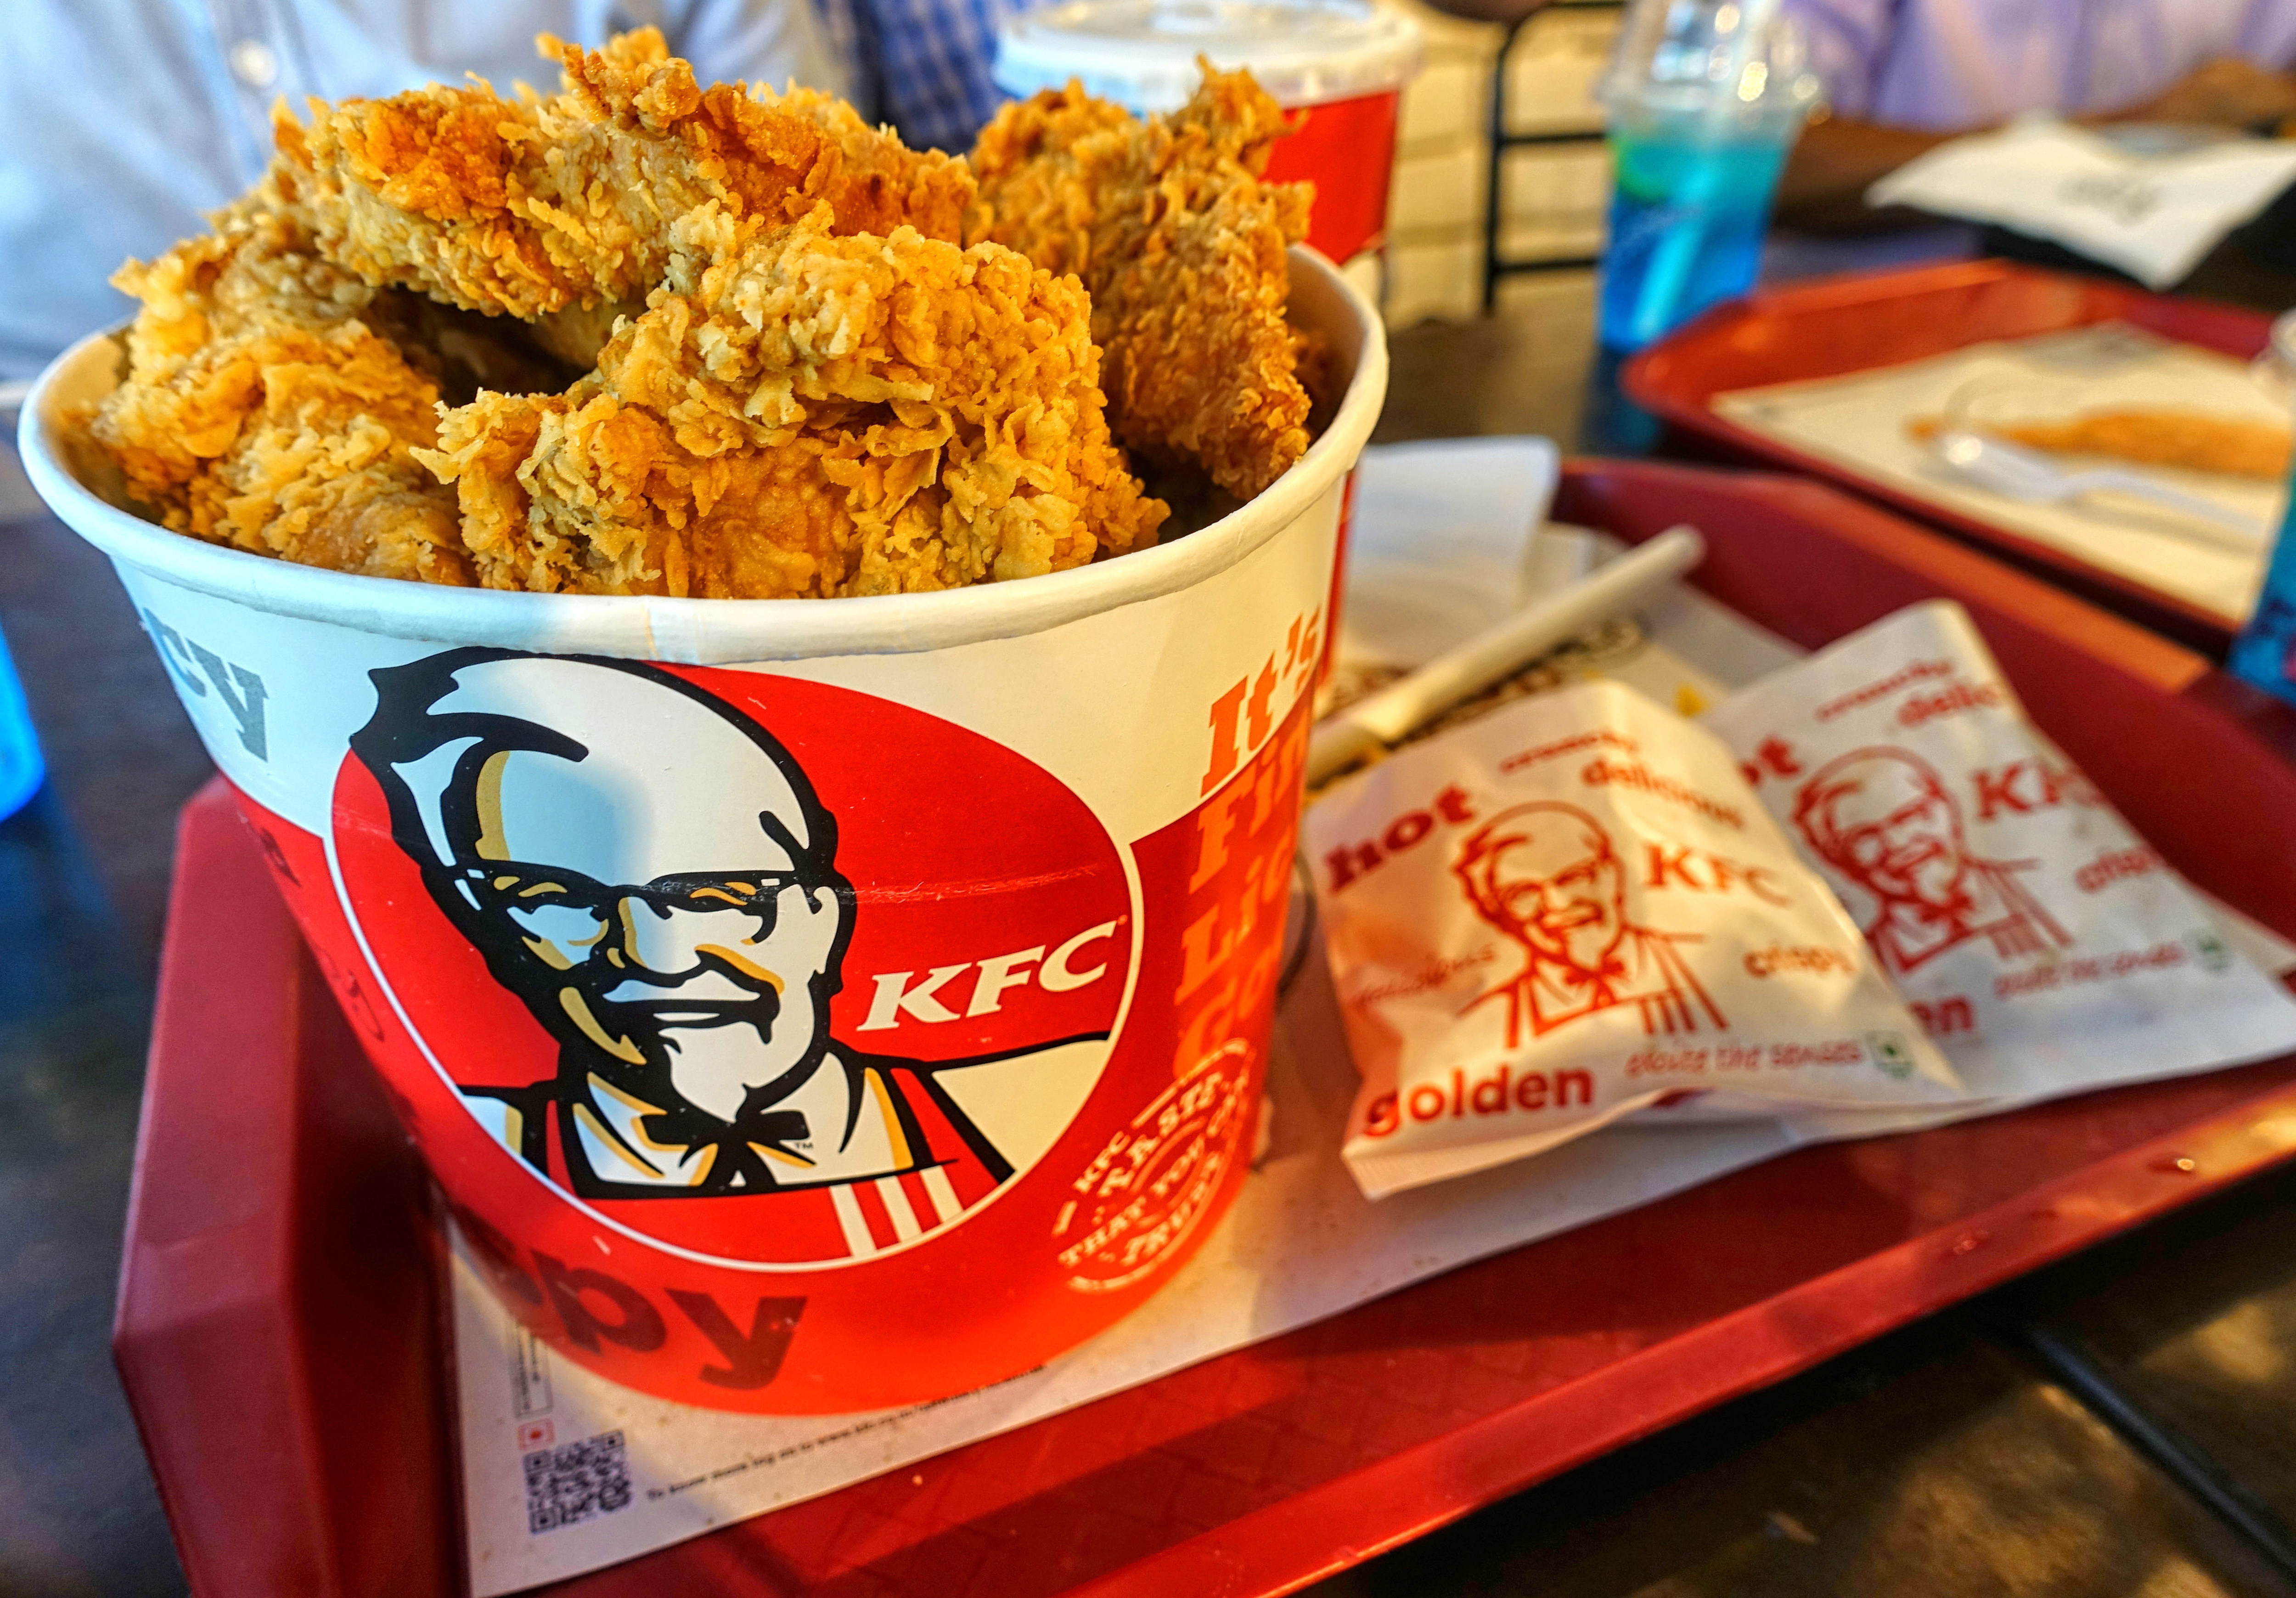 KFC Bucket Chicken at an outlet in City Center shopping mall...